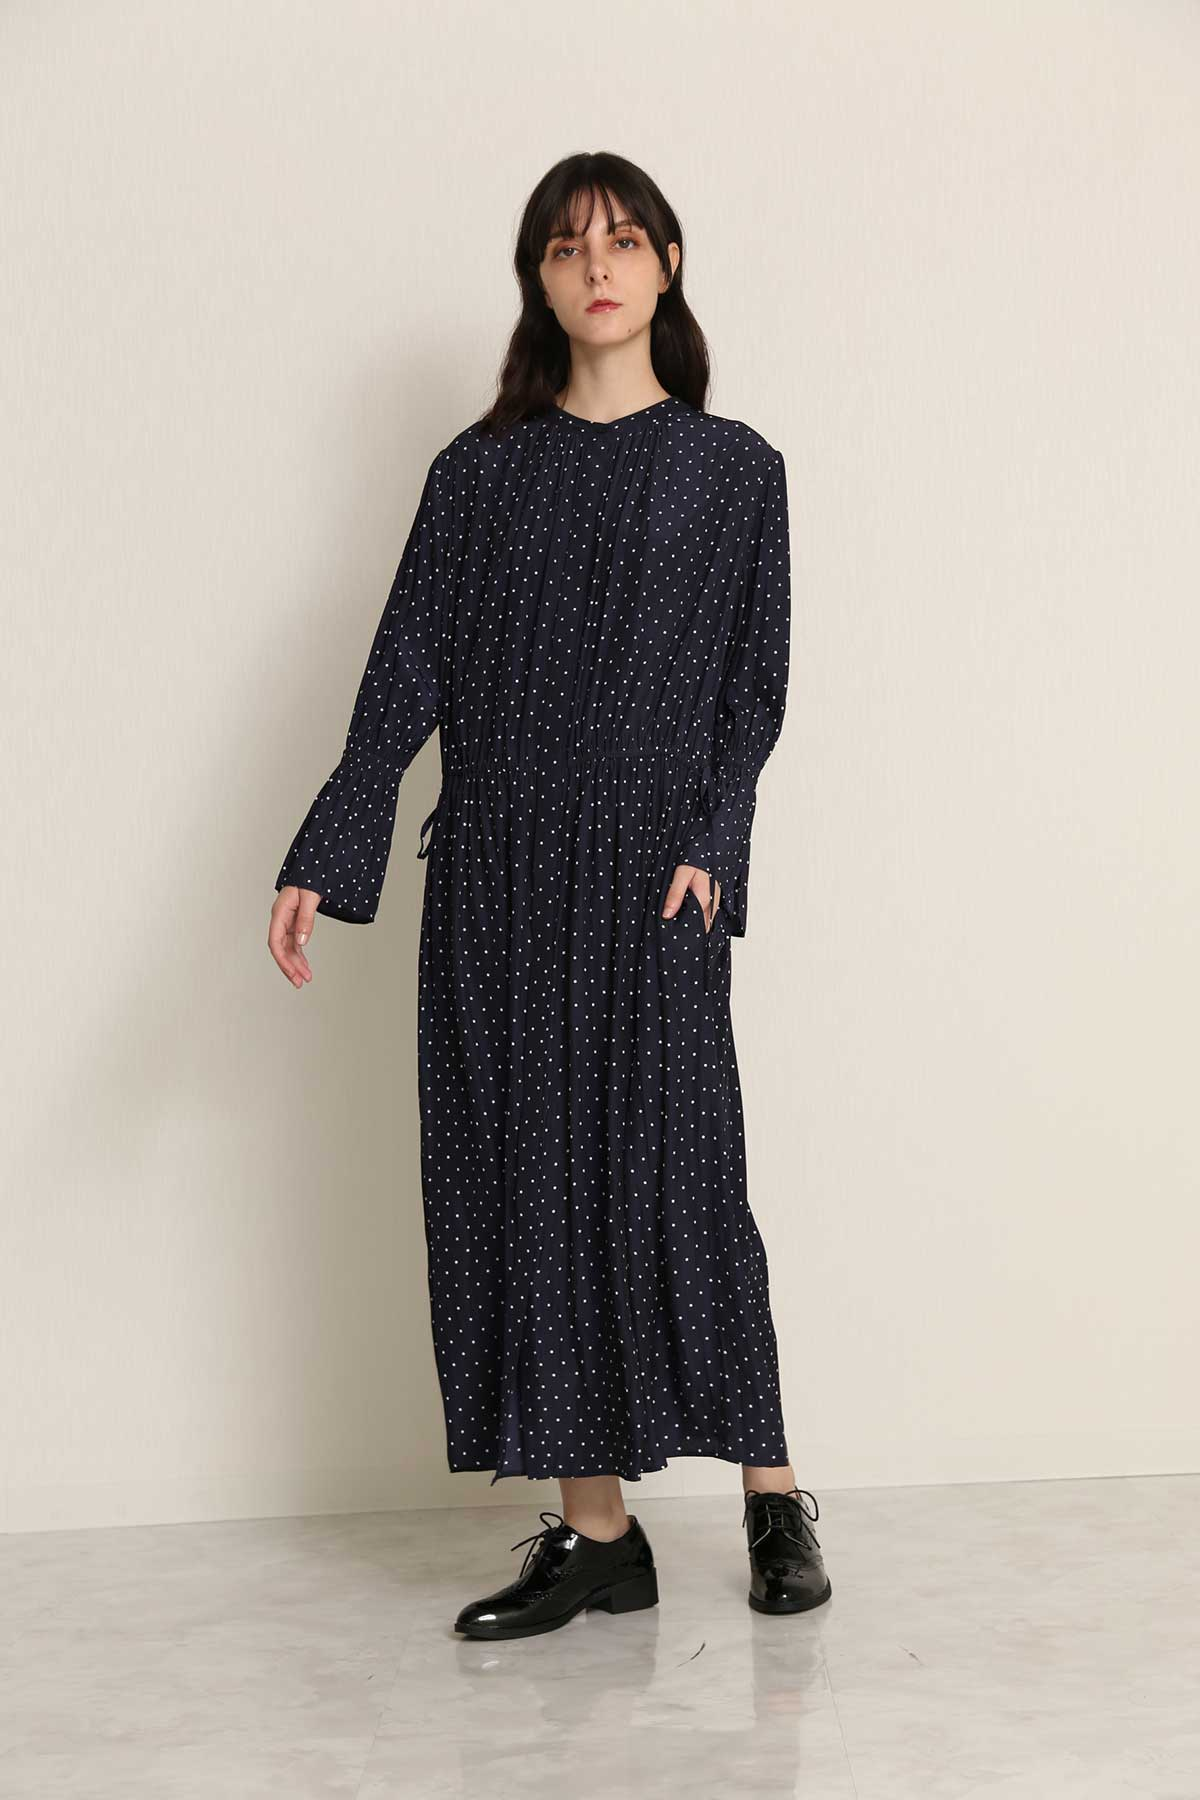 BO21-114D-navydot Polkadot Ordinary de Chine Toga dress-NAVY DOT-【BO21-114D】Del.Aug.